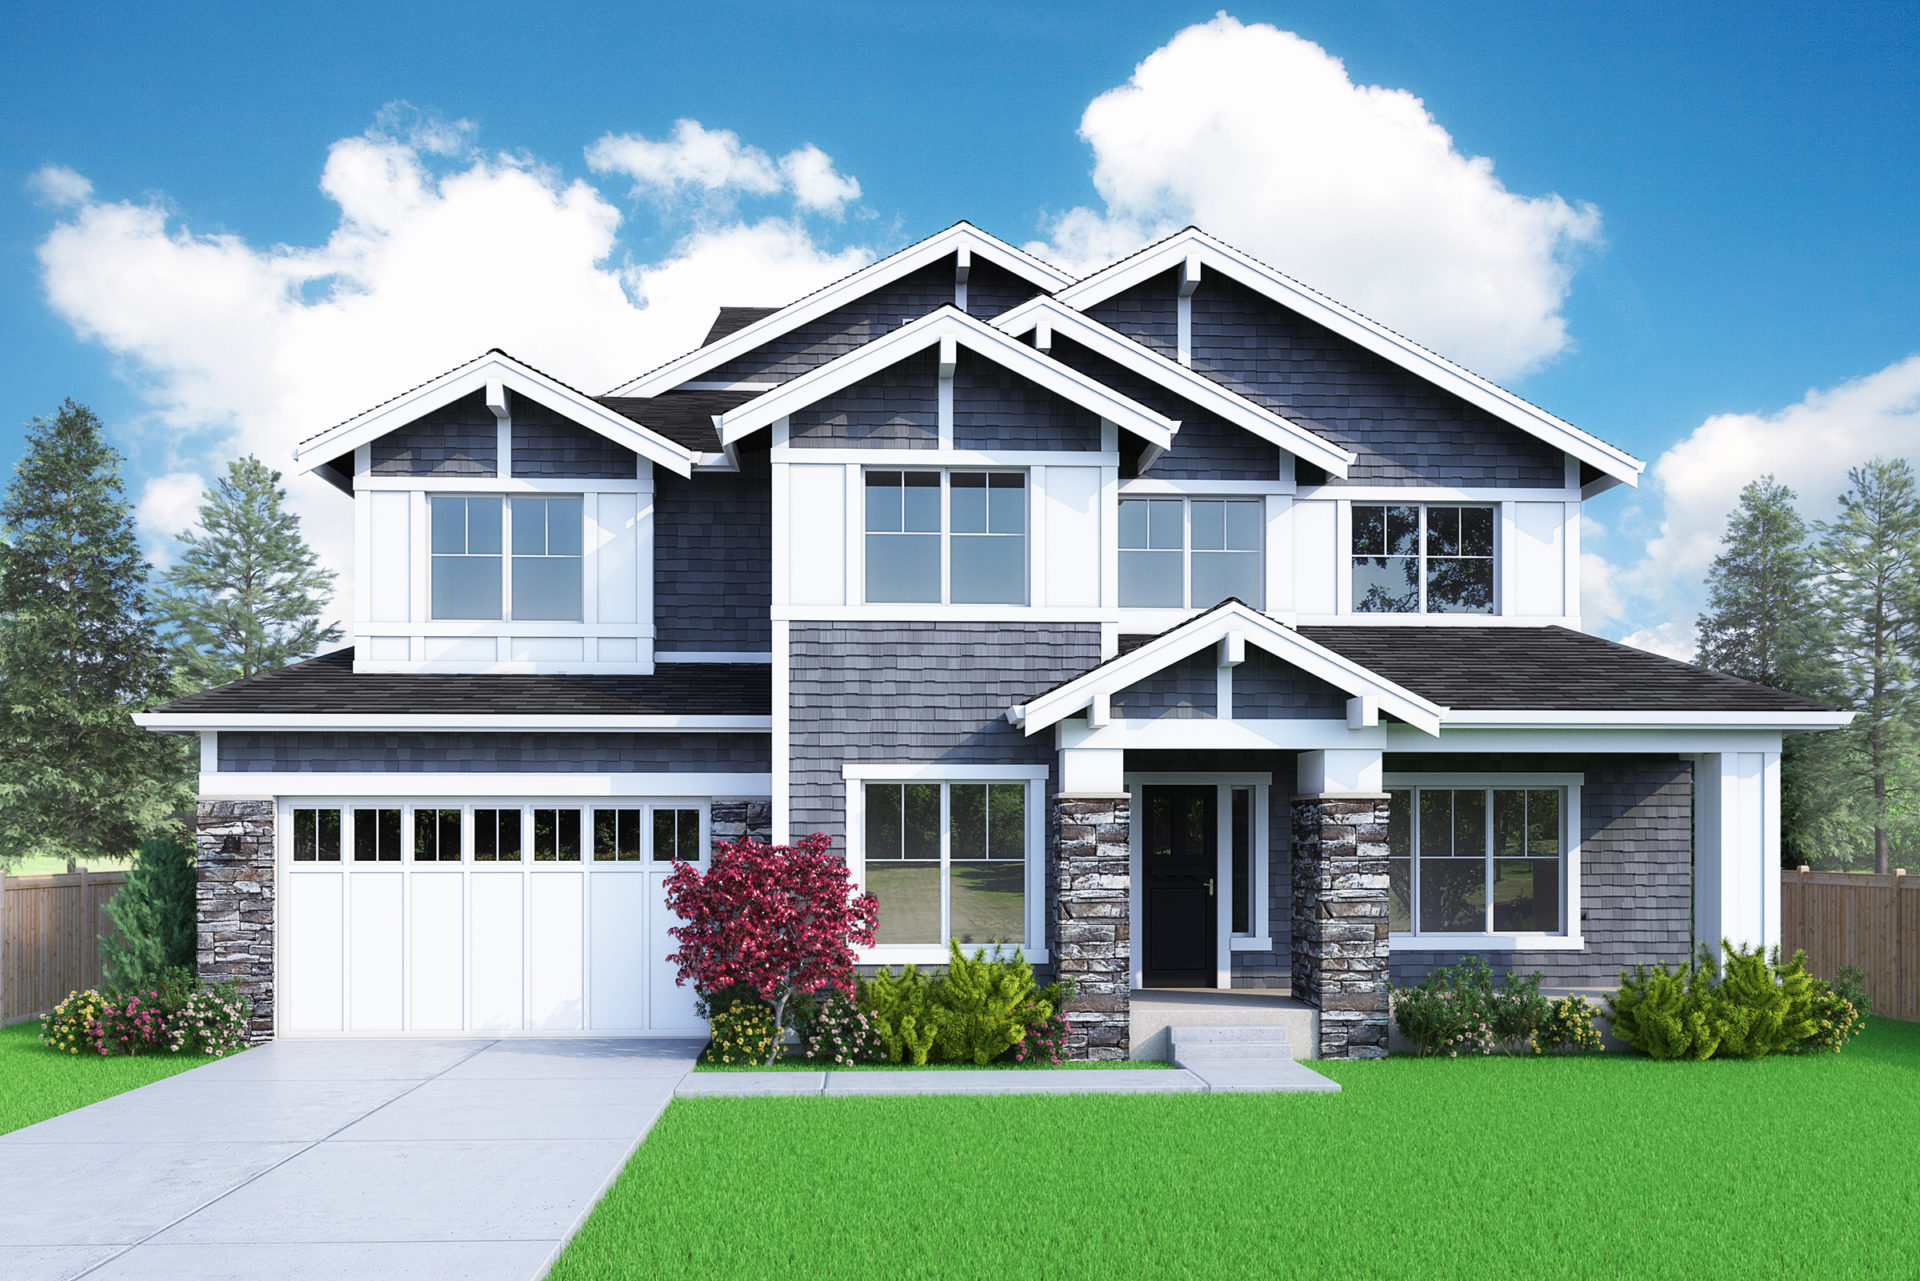 View our new luxury home construction on 4018 142nd AVE SE, Bellevue, WA from MN Custom Homes